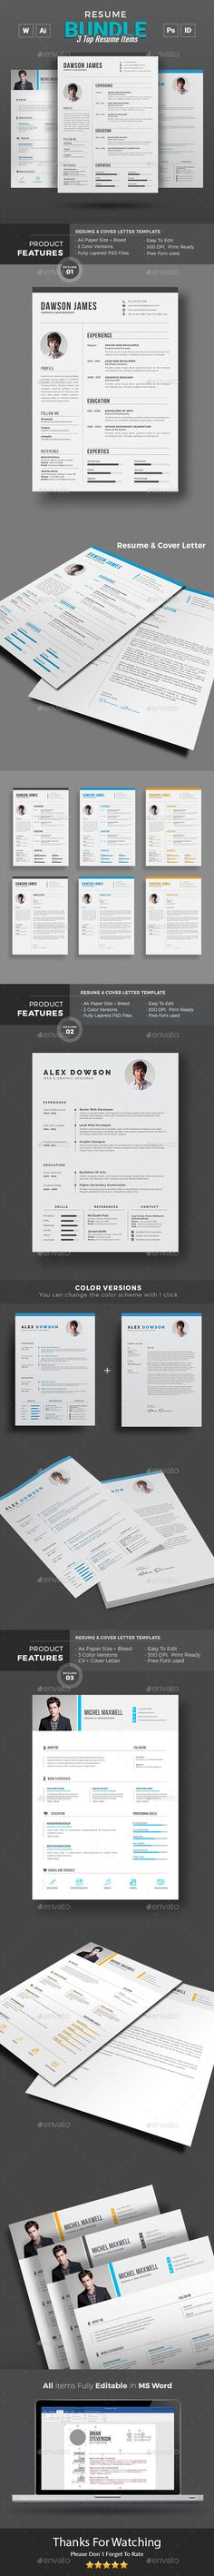 Stunning 3 resume template in one. College Resume Template, Simple Resume Template, Resume Design Template, Creative Resume Templates, Creative Cv, Stationery Templates, Stationery Design, Best Cv Template, Resume Words Skills